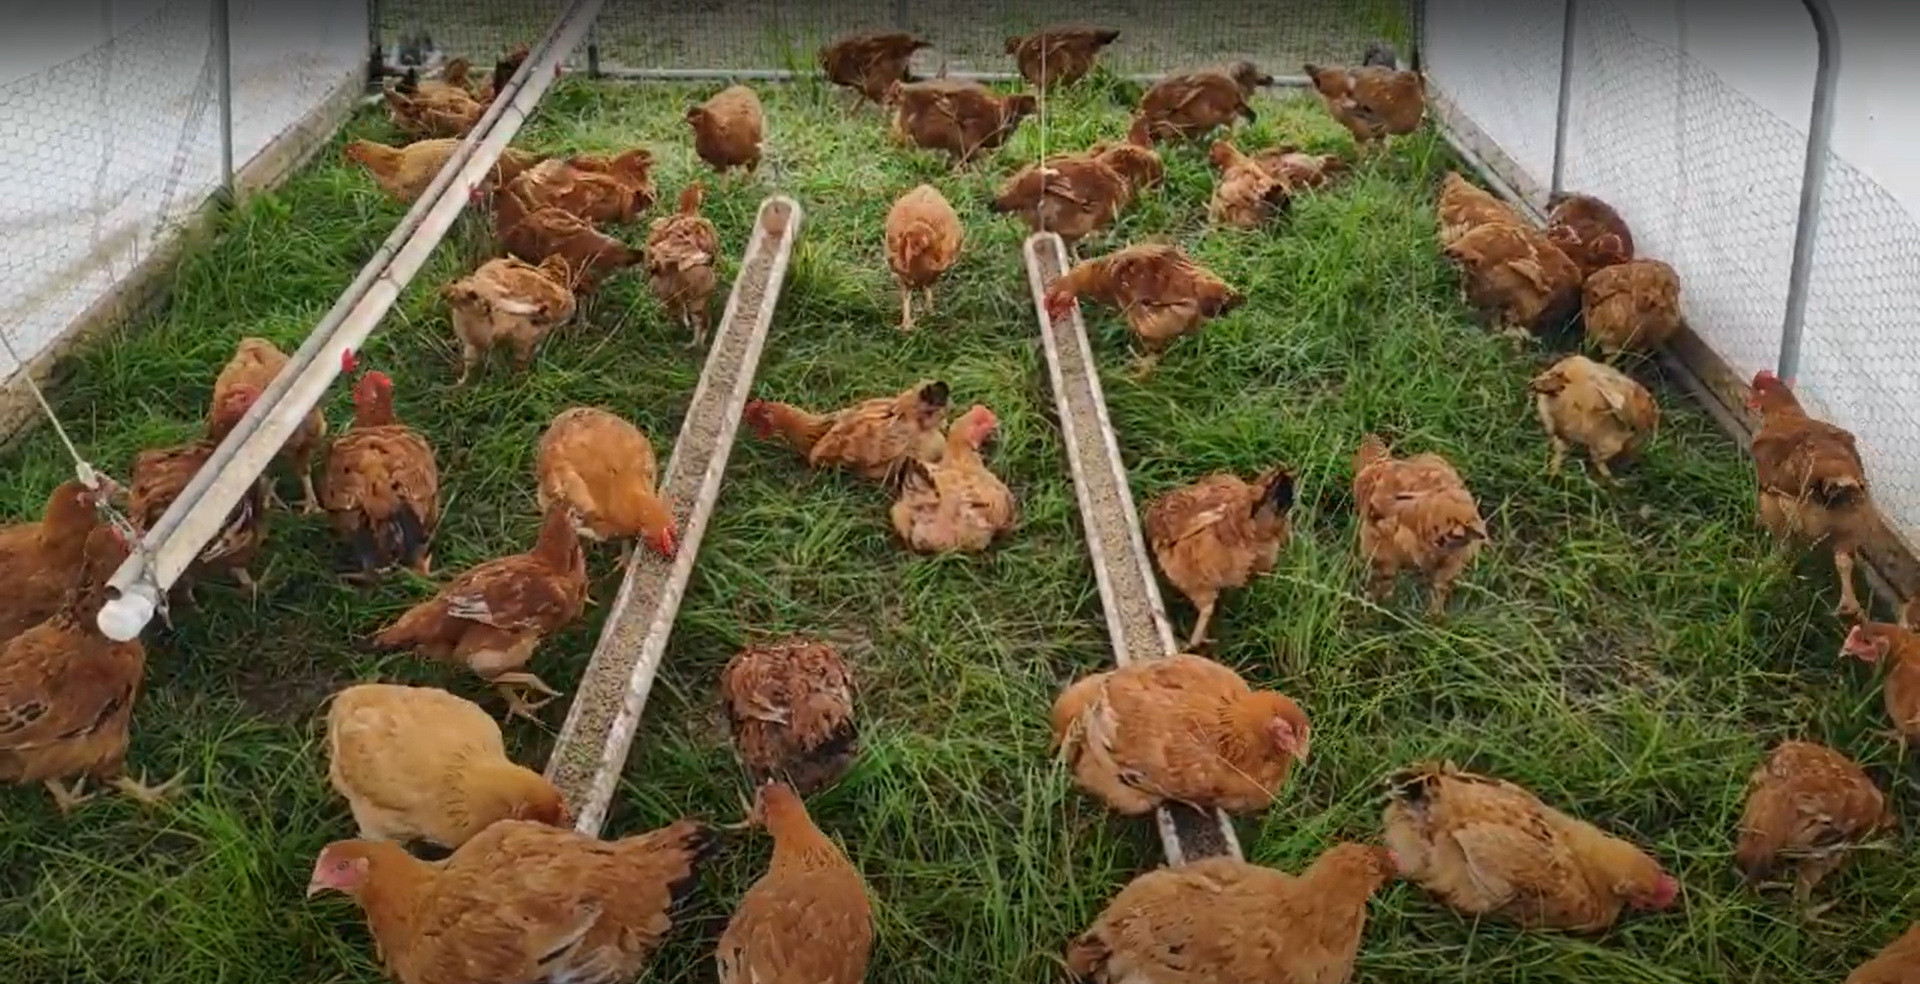 This is a picture of our Lectin-Light Chicken tractor setup